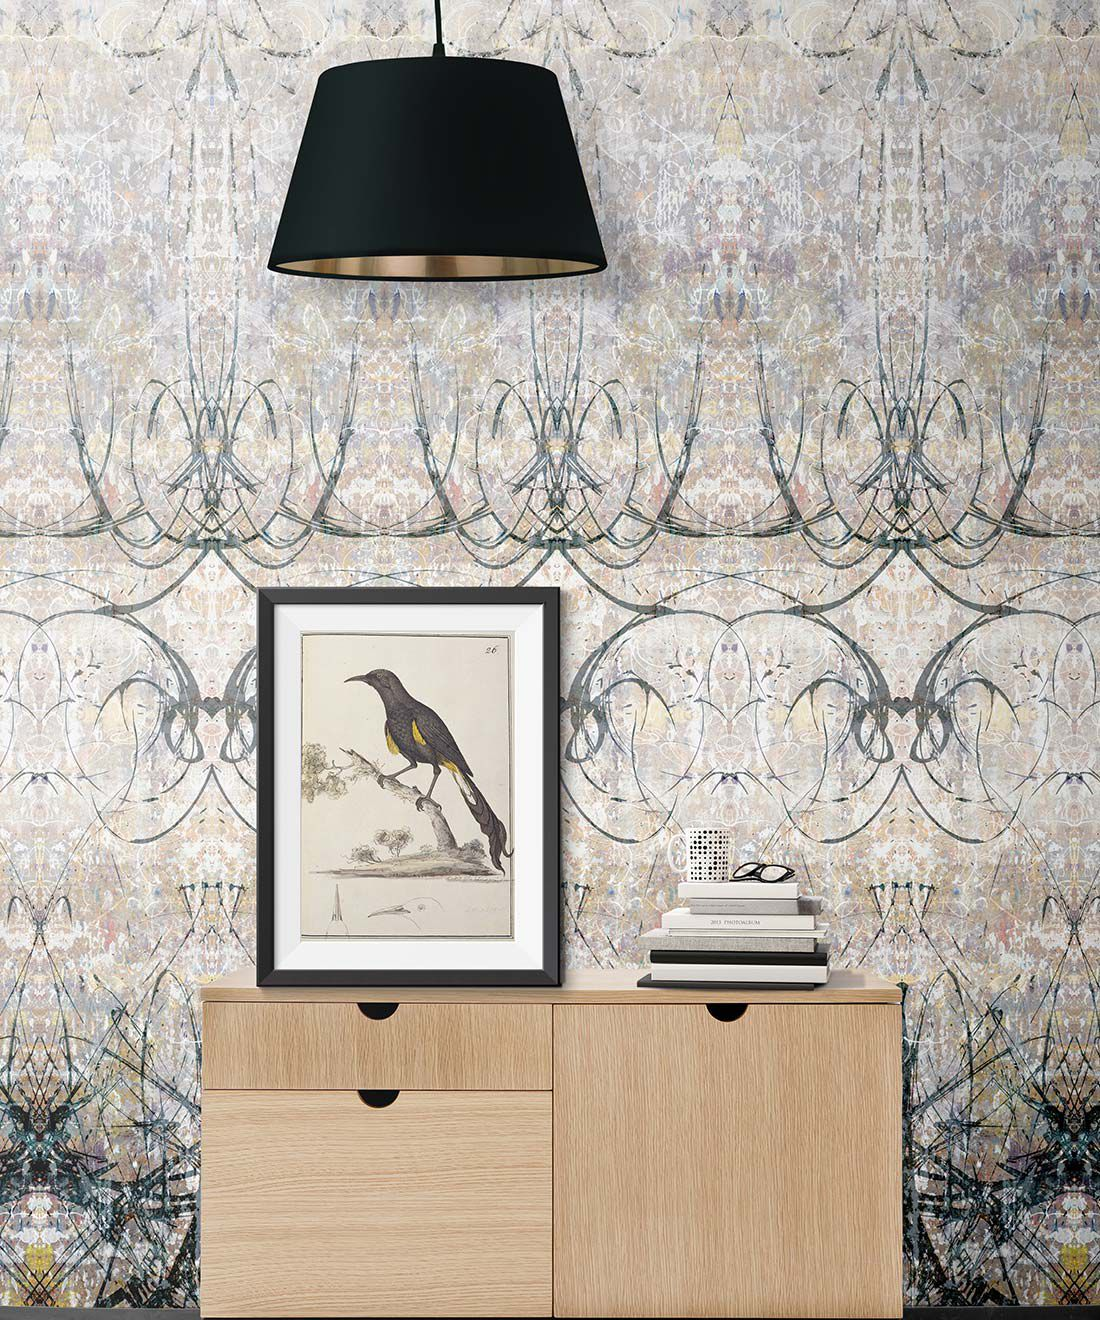 Ramose Wallpaper by Simcox • Color original • Abstract Wallpaper • insitu